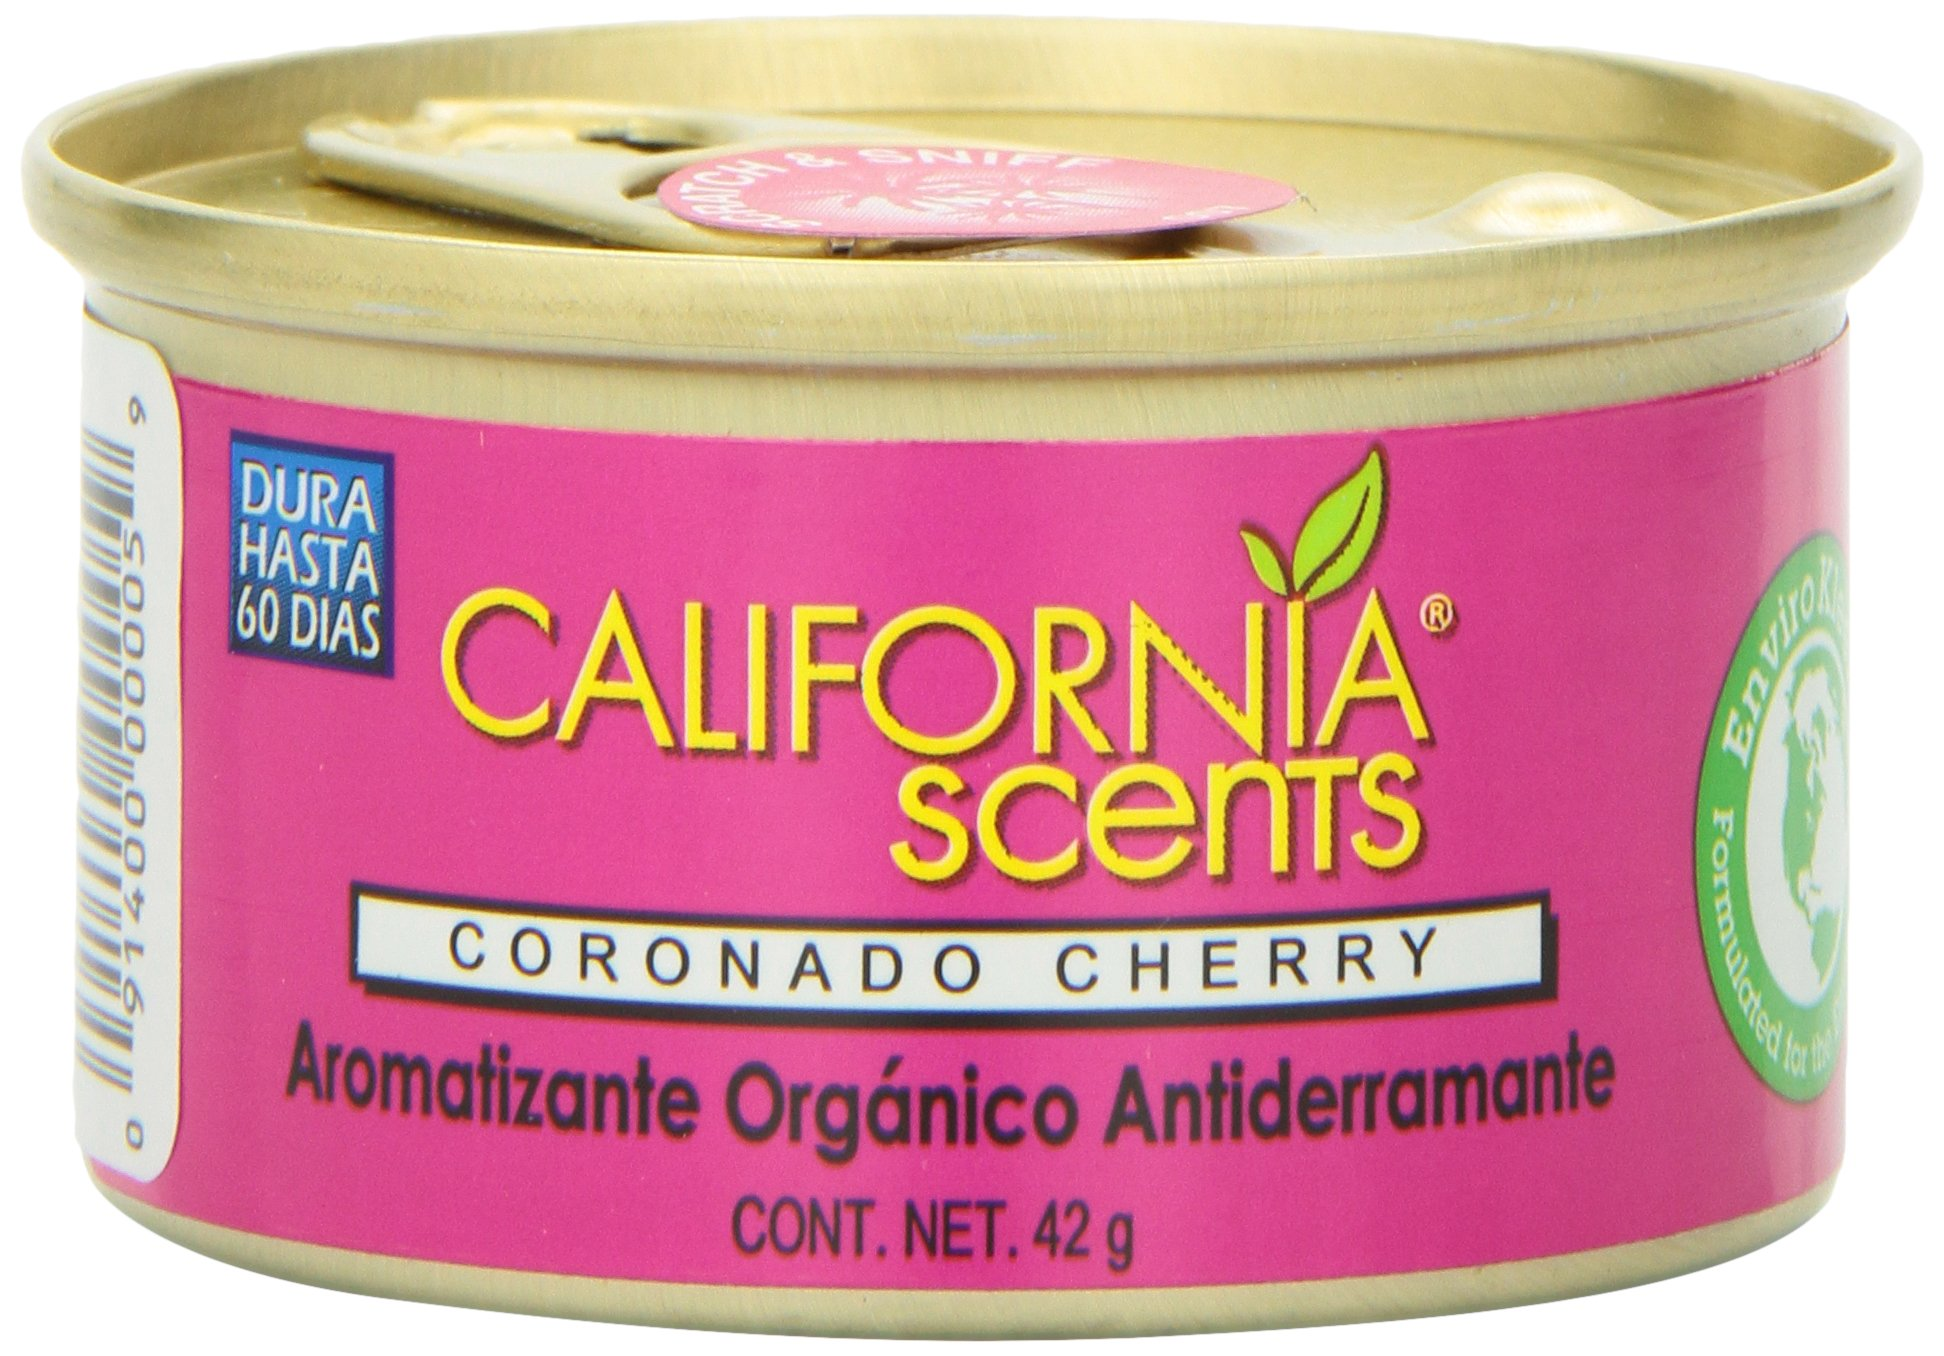 California Scents Spillproof Organic Air Freshener Twin-pack, Coronado Cherry, 1.5 Ounce Canister (Pack of 4)